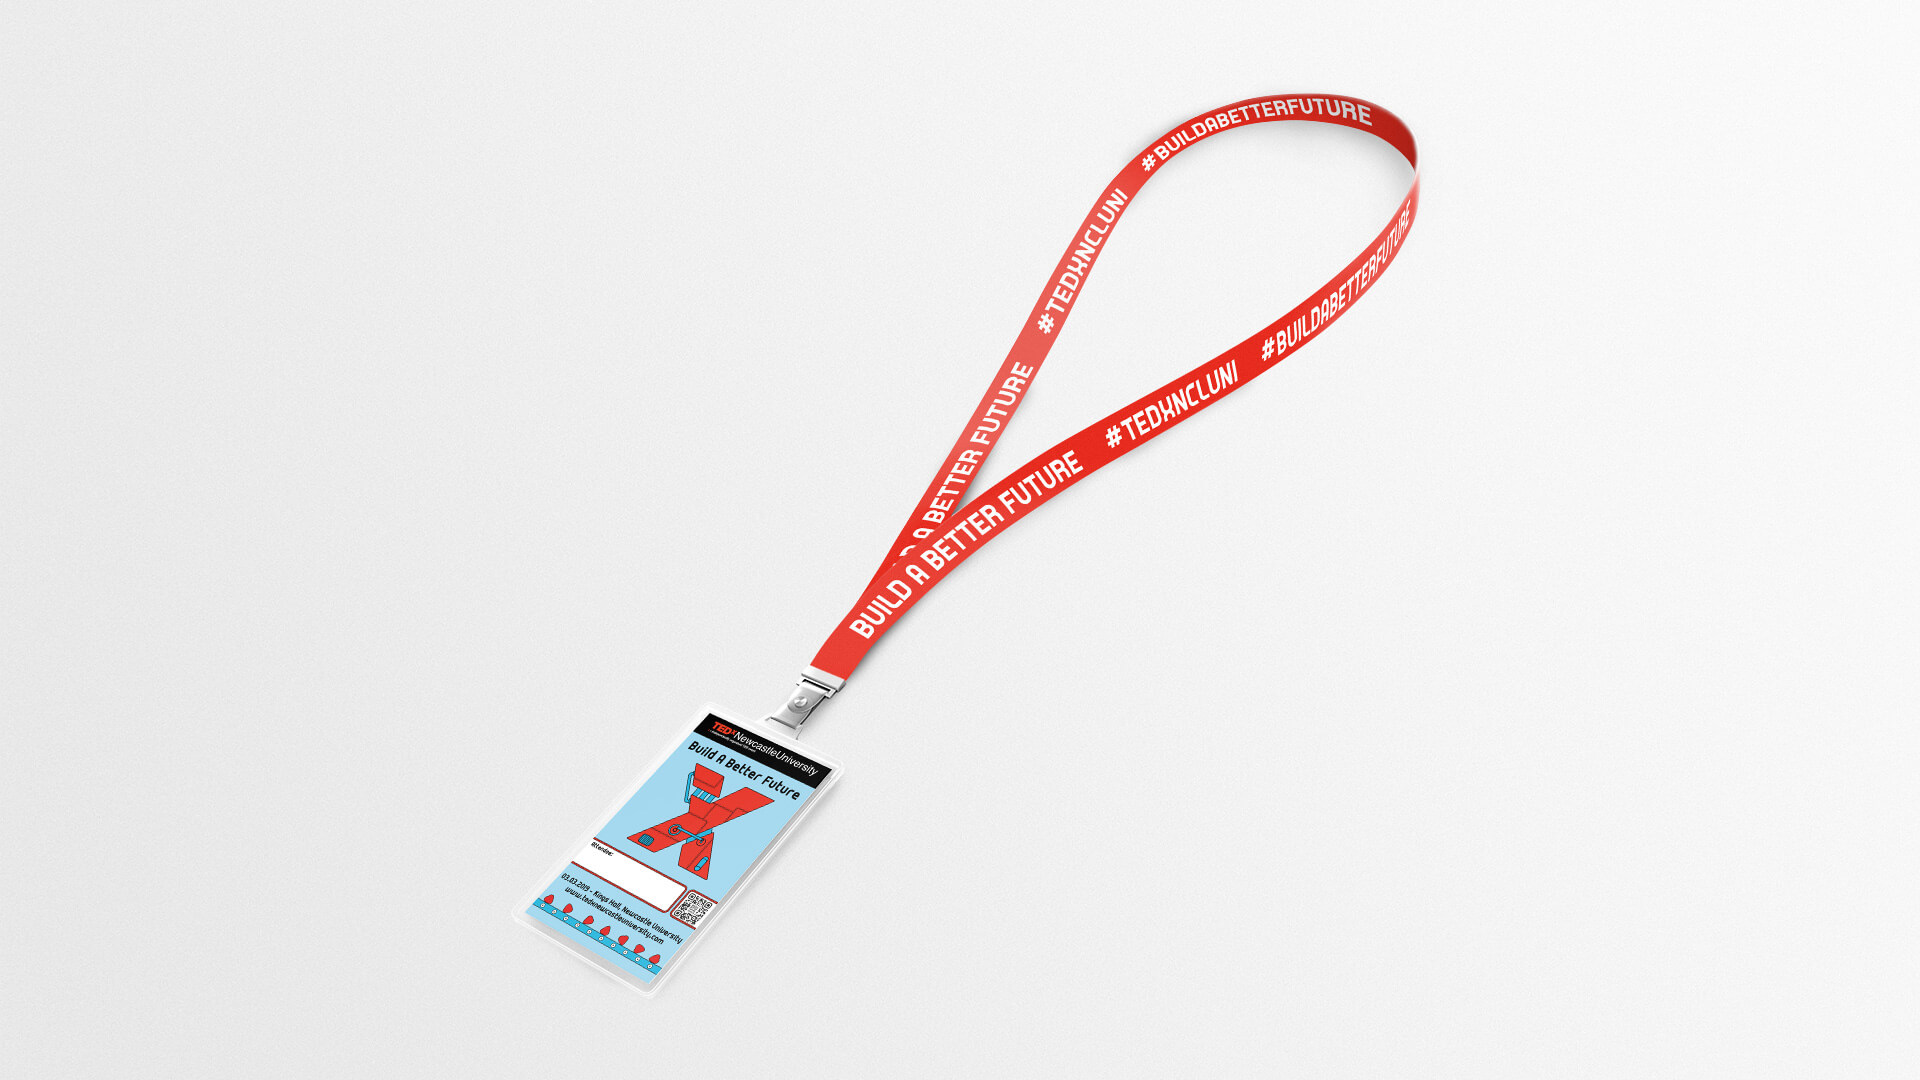 THAT Branding Company - Ethical Creative Design and Branding Agency in Newcastle Gateshead and Durham created the lanyard used in the conference.